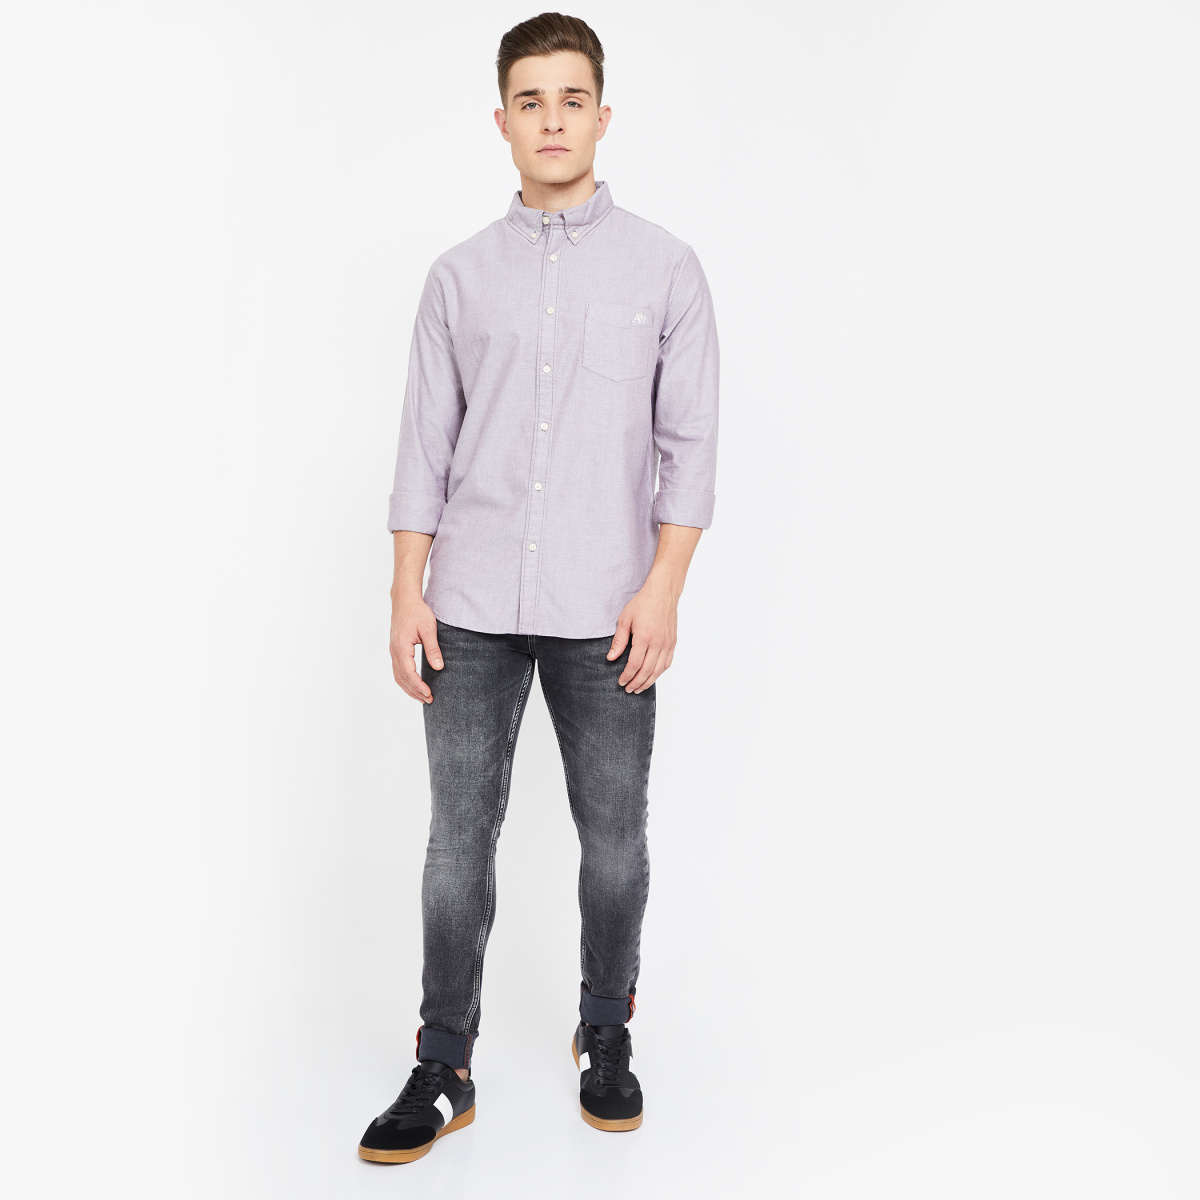 AEROPOSTALE Solid Slim Fit Casual Shirt